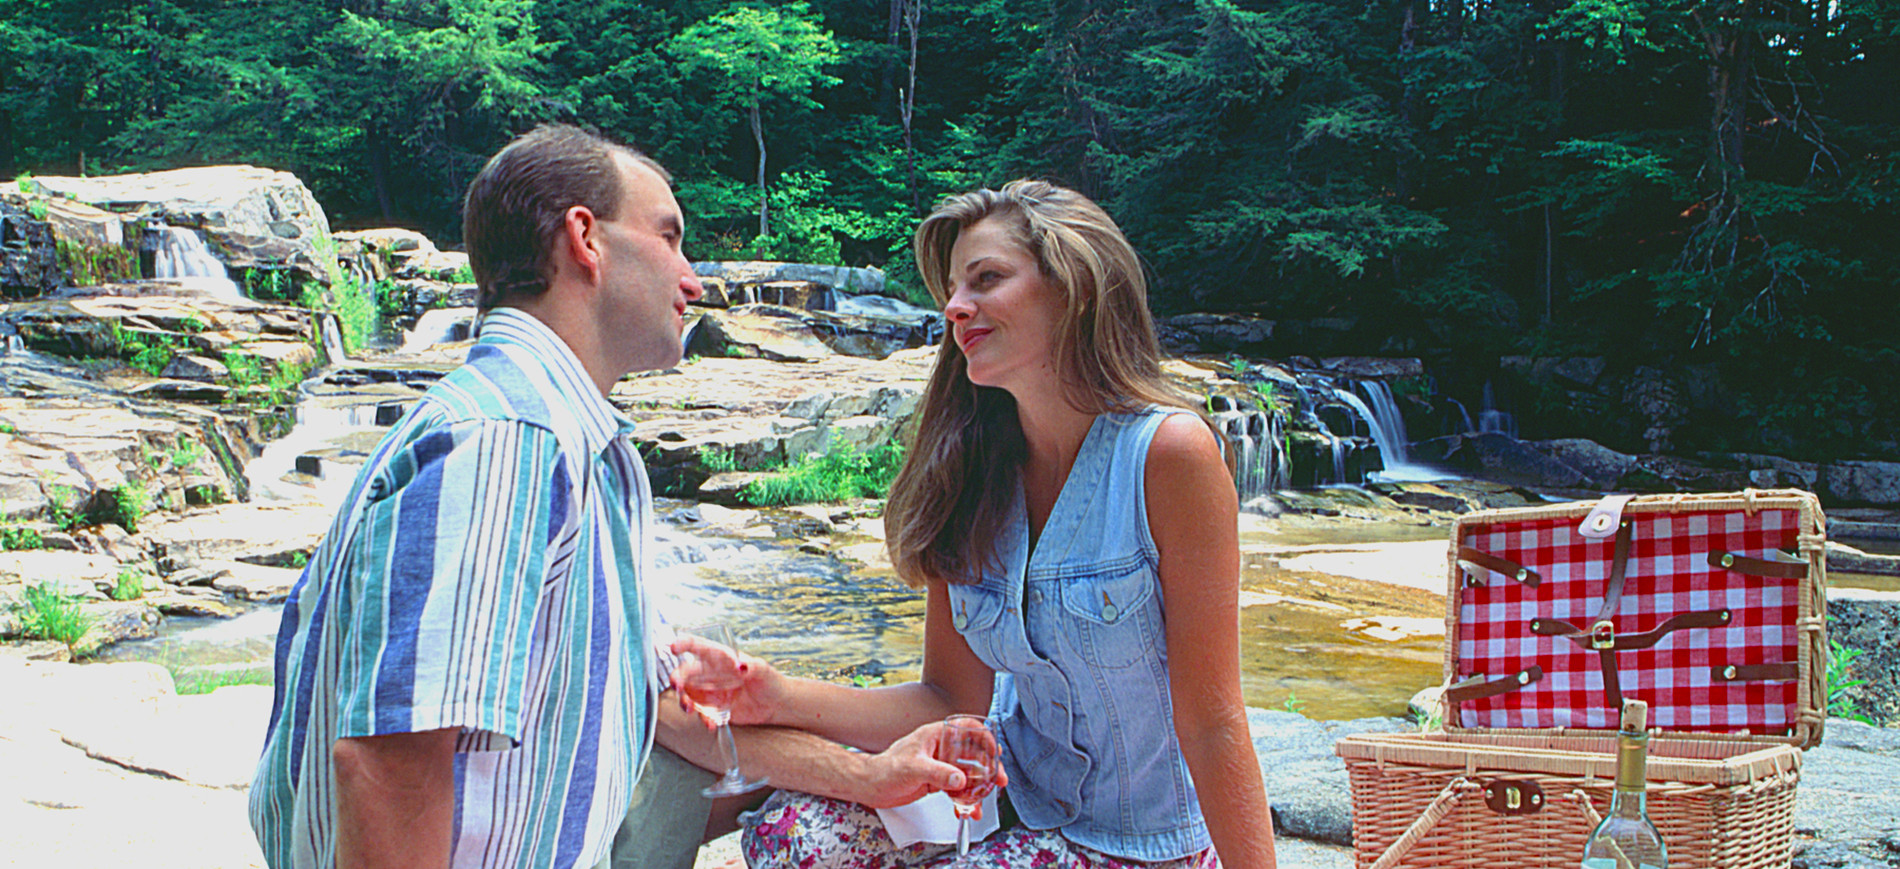 Couple toasting at picnic lunch by waterfall